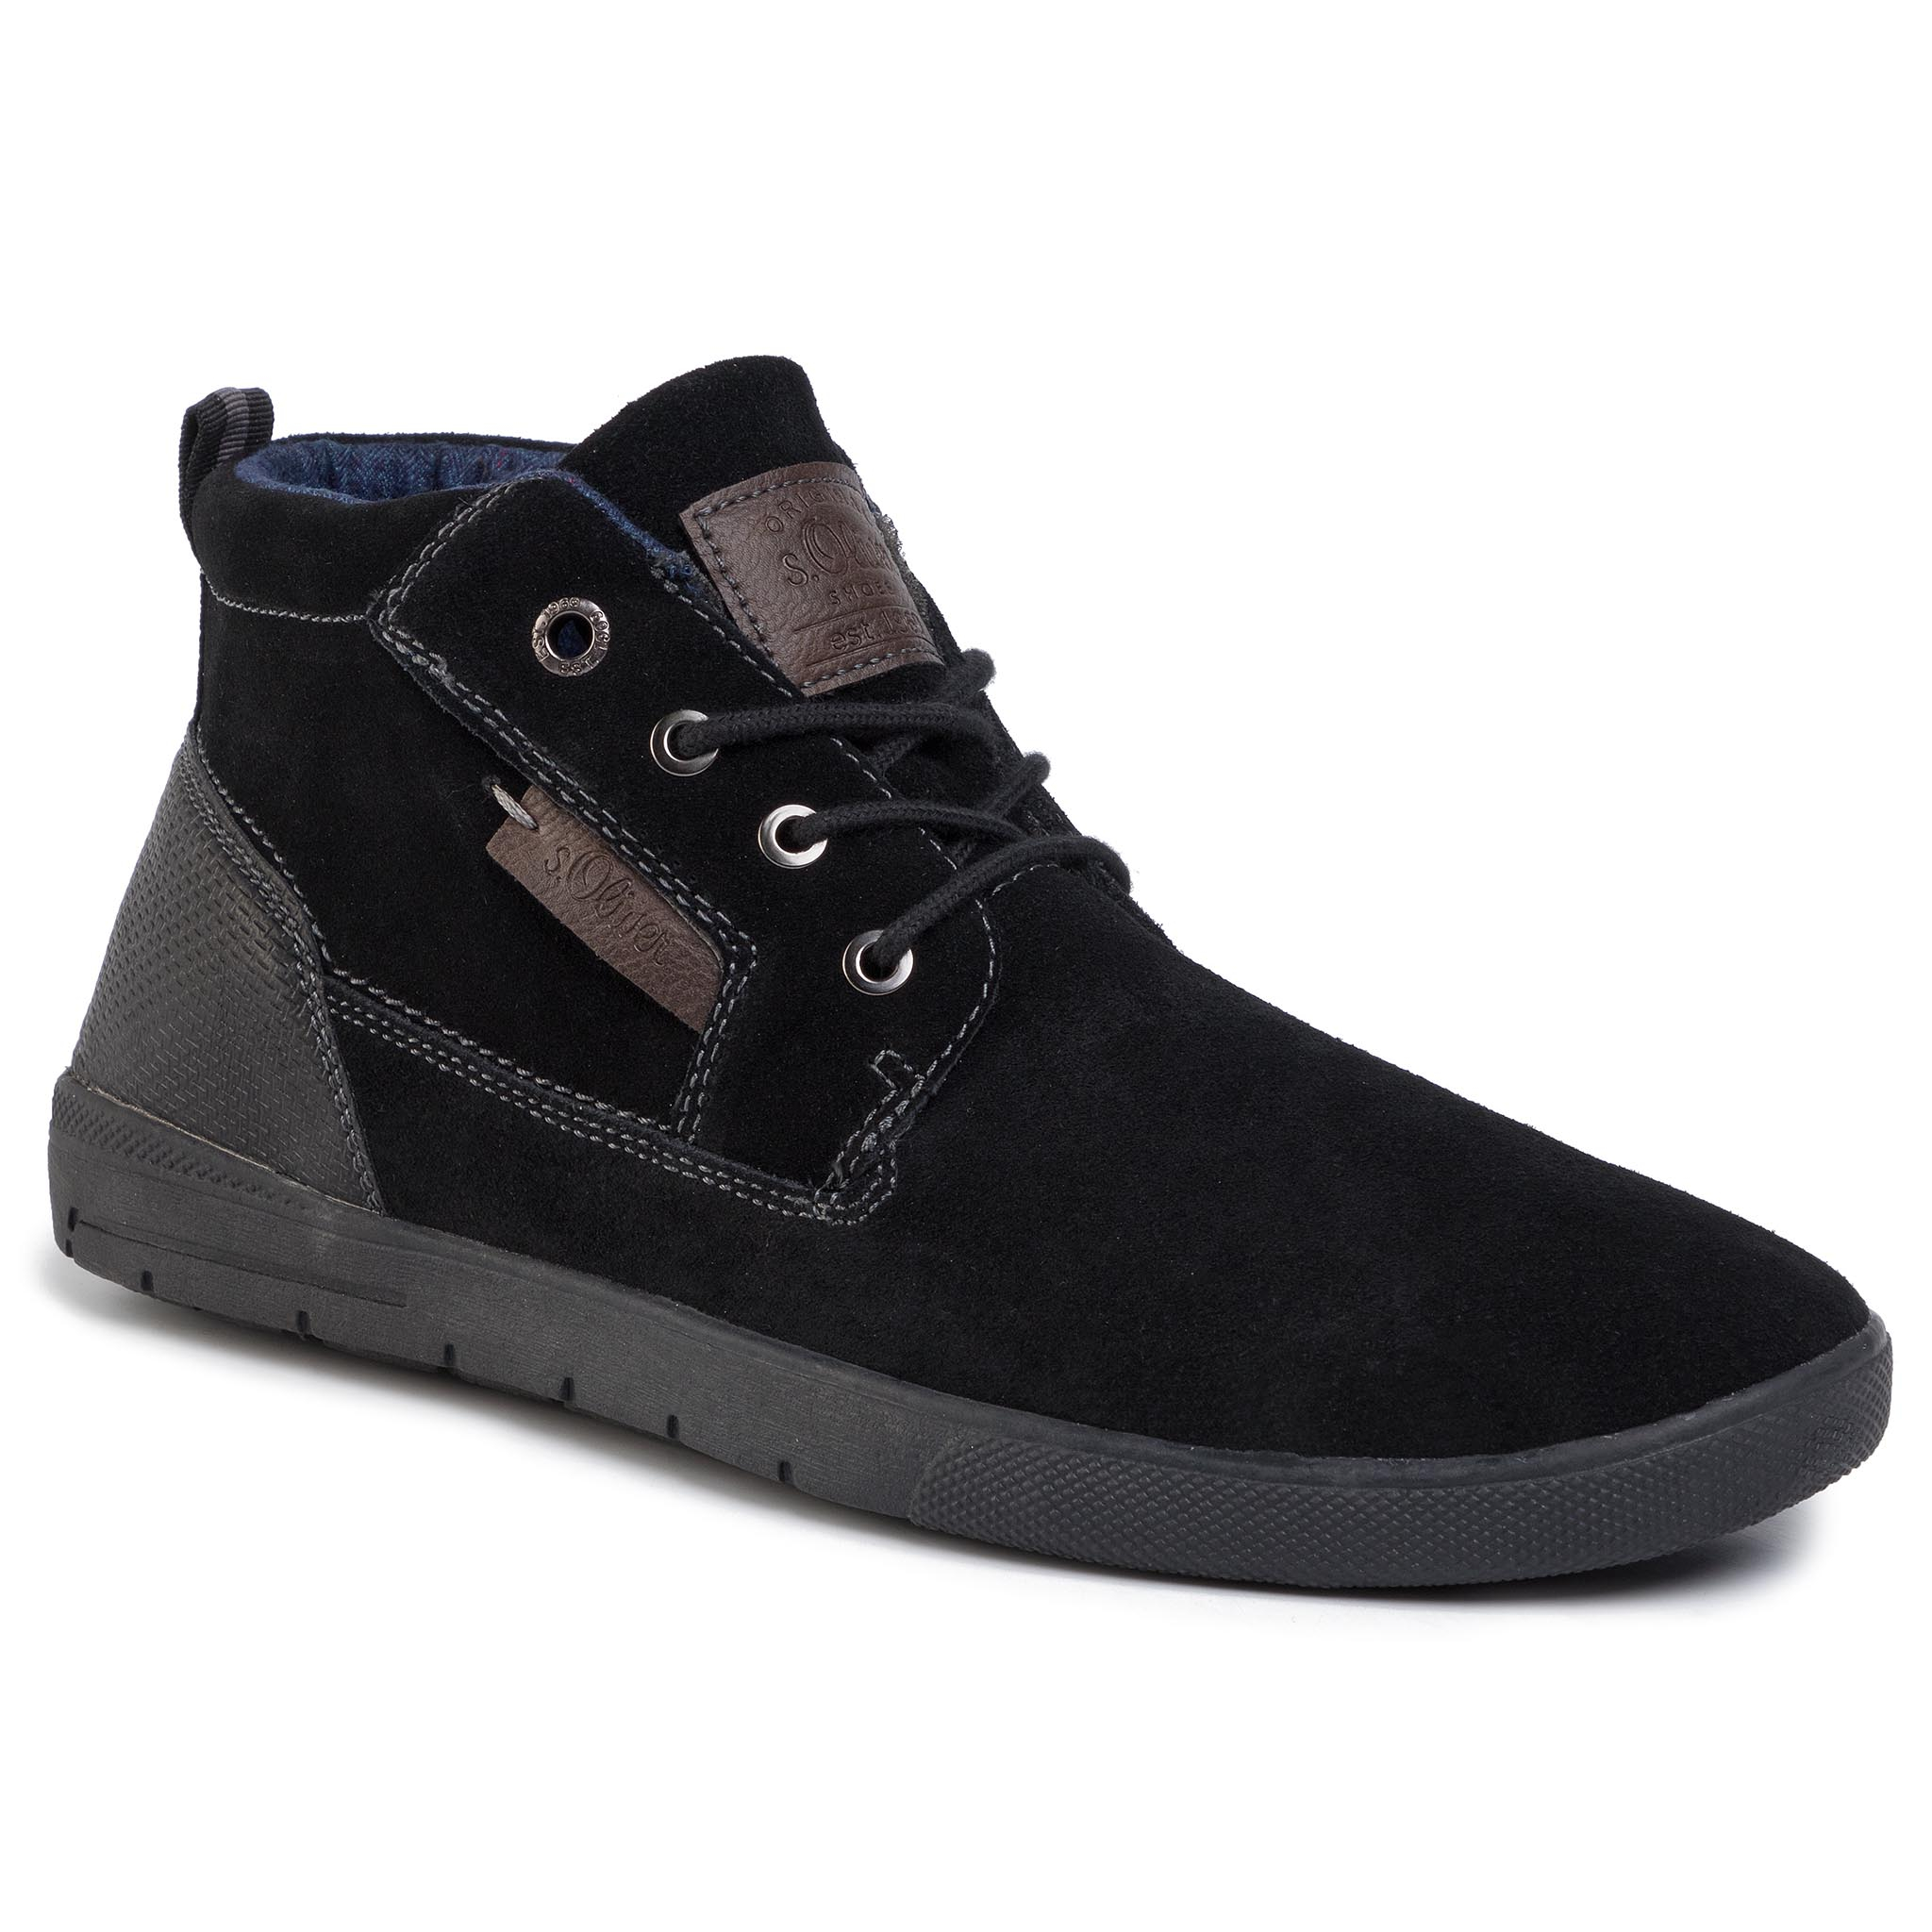 Sneakers S.OLIVER - 5-5-15205-23 Black 001